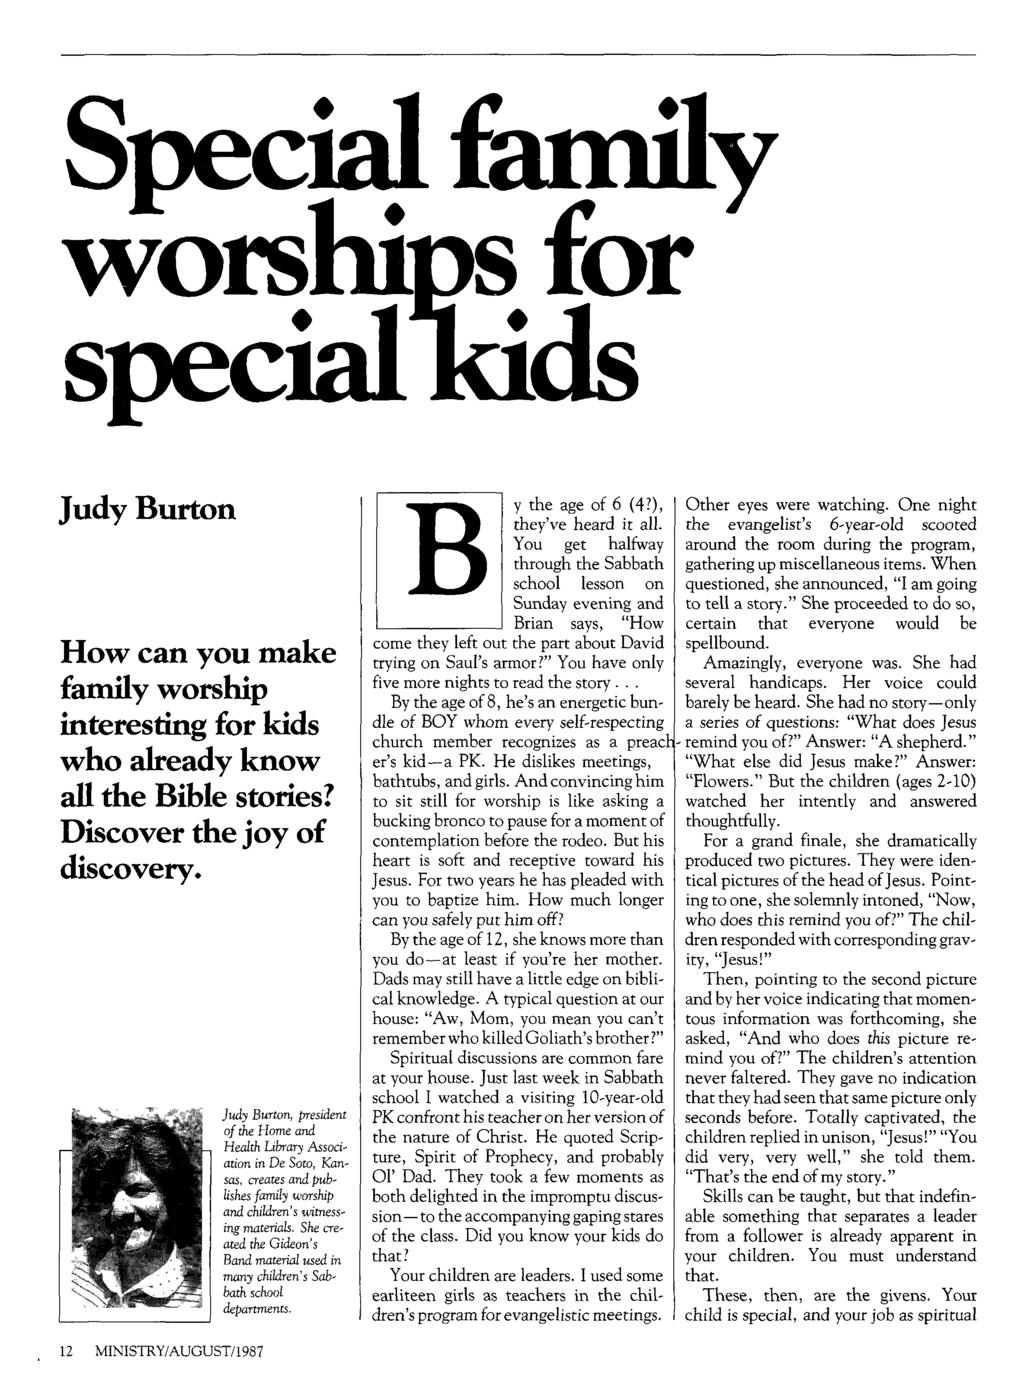 Special family worships for speciatkids Judy Burton How can you make family worship interesting for kids who already know all the Bible stories? Discover the joy of discovery.